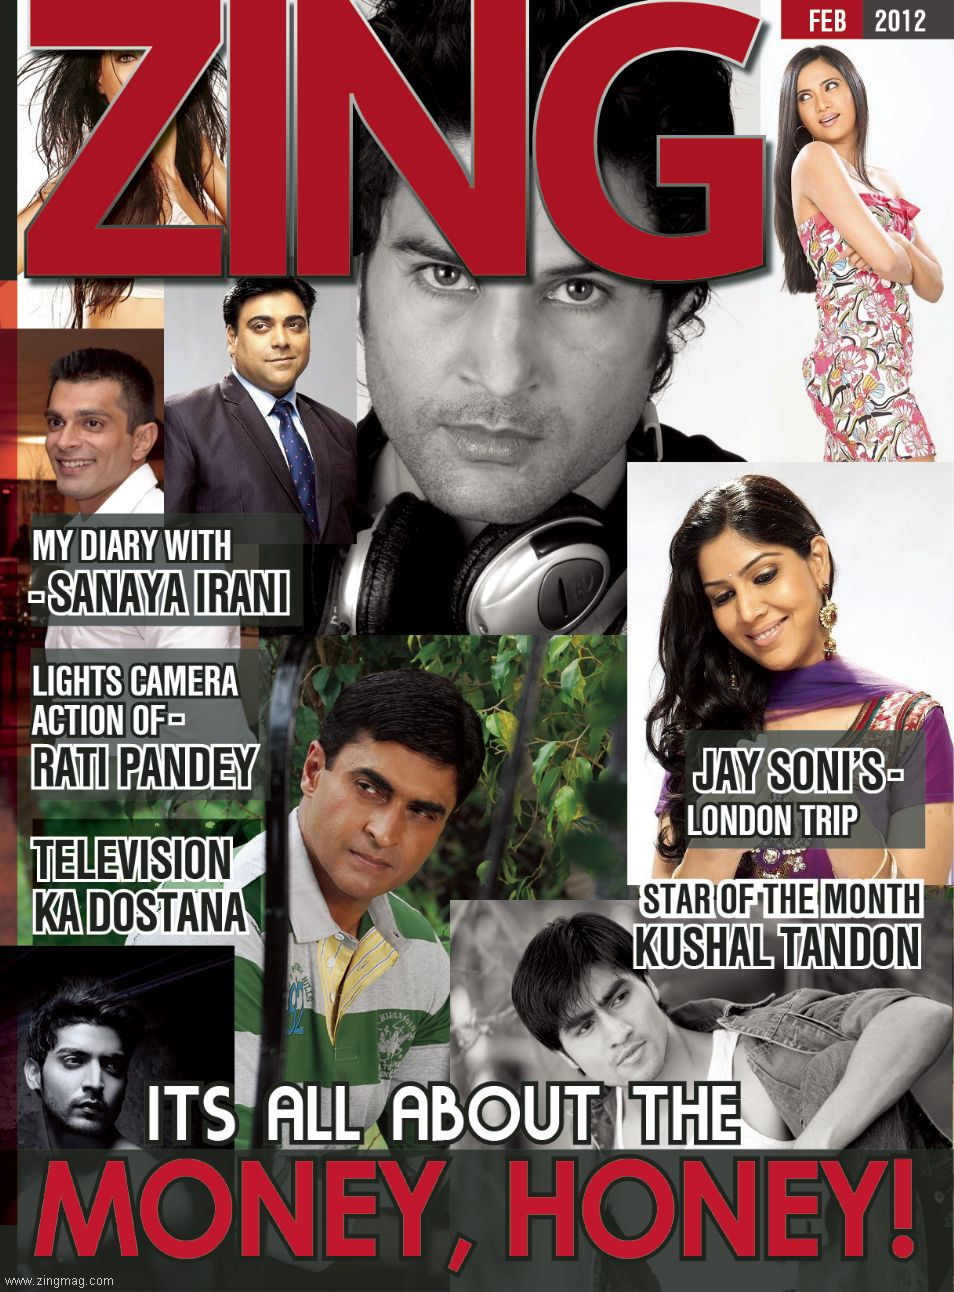 Zing Mag February issue